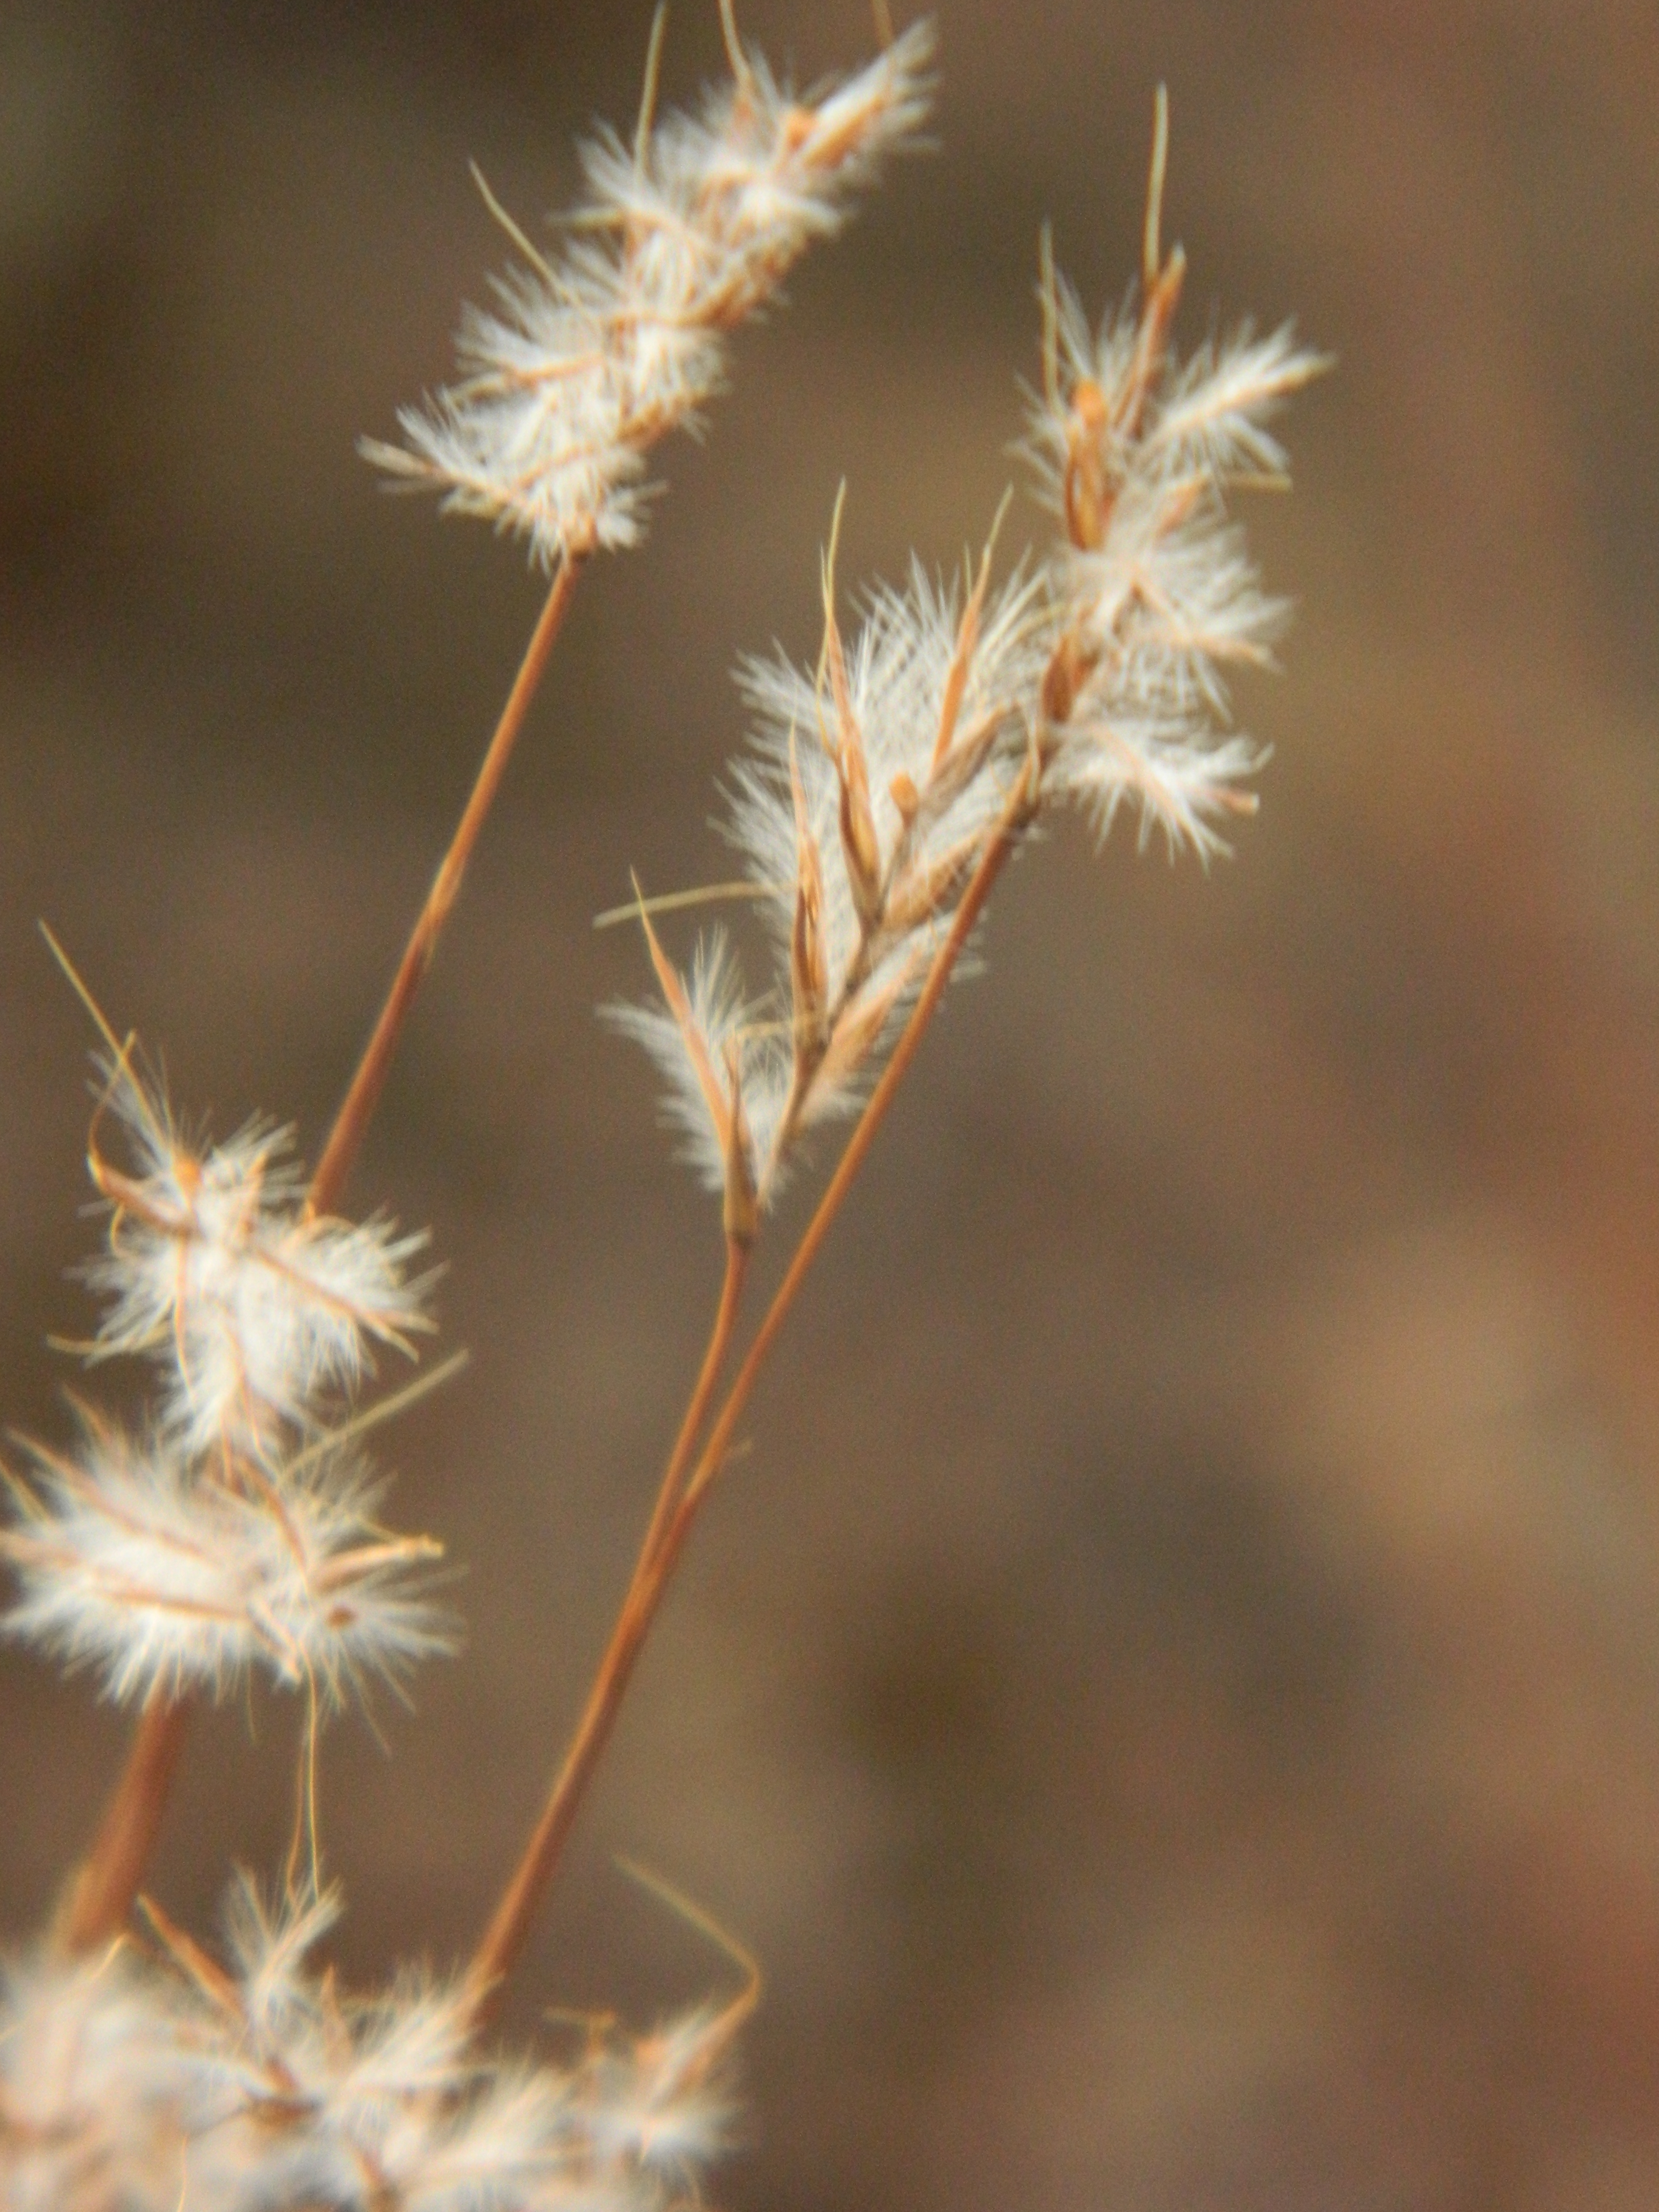 native plants | Prairie Piece: living in harmony with nature